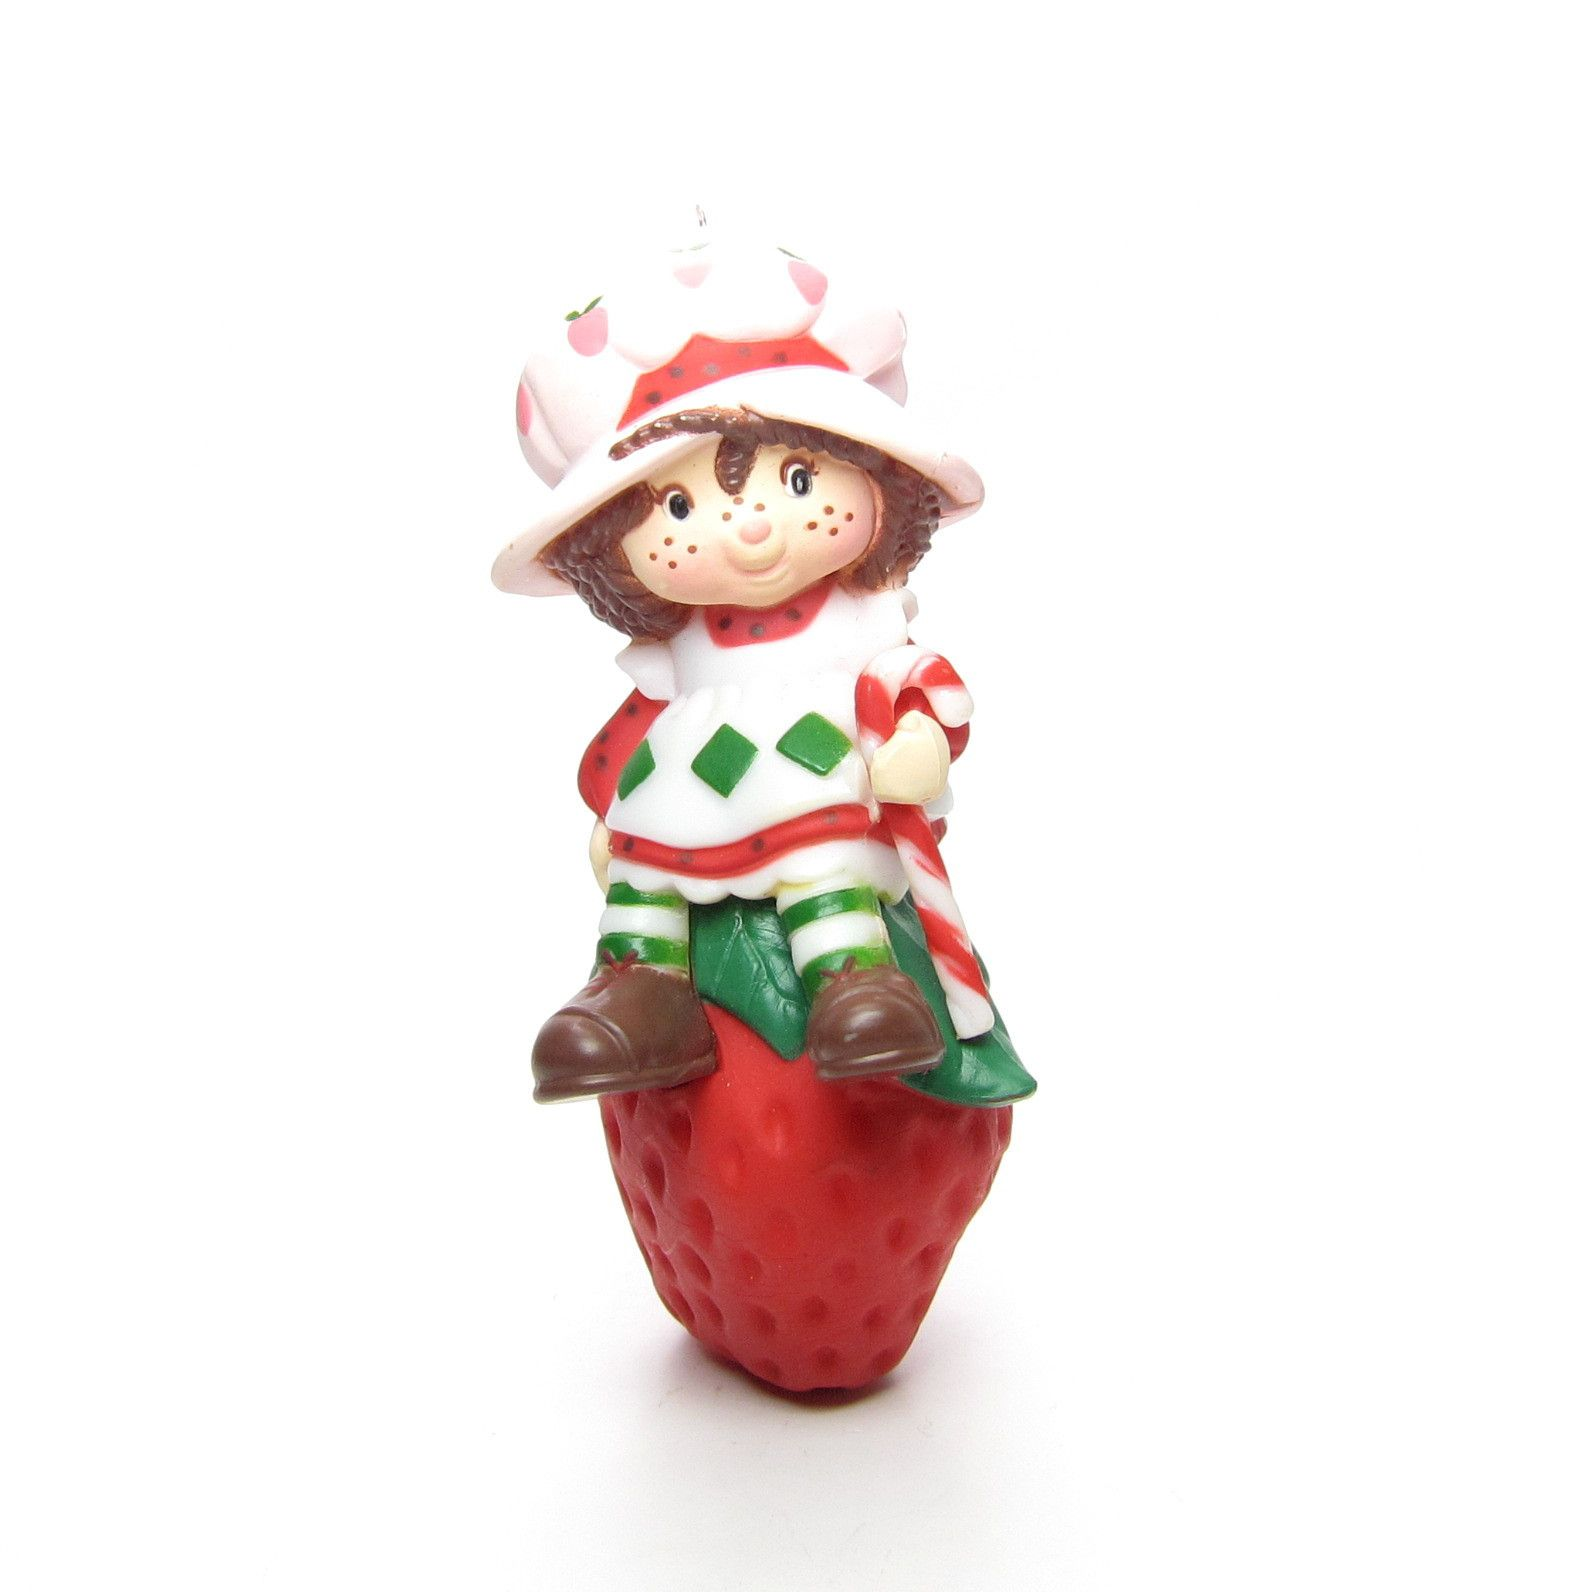 Strawberry christmas ornaments - Strawberry Shortcake Christmas Ornament With Candy Cane